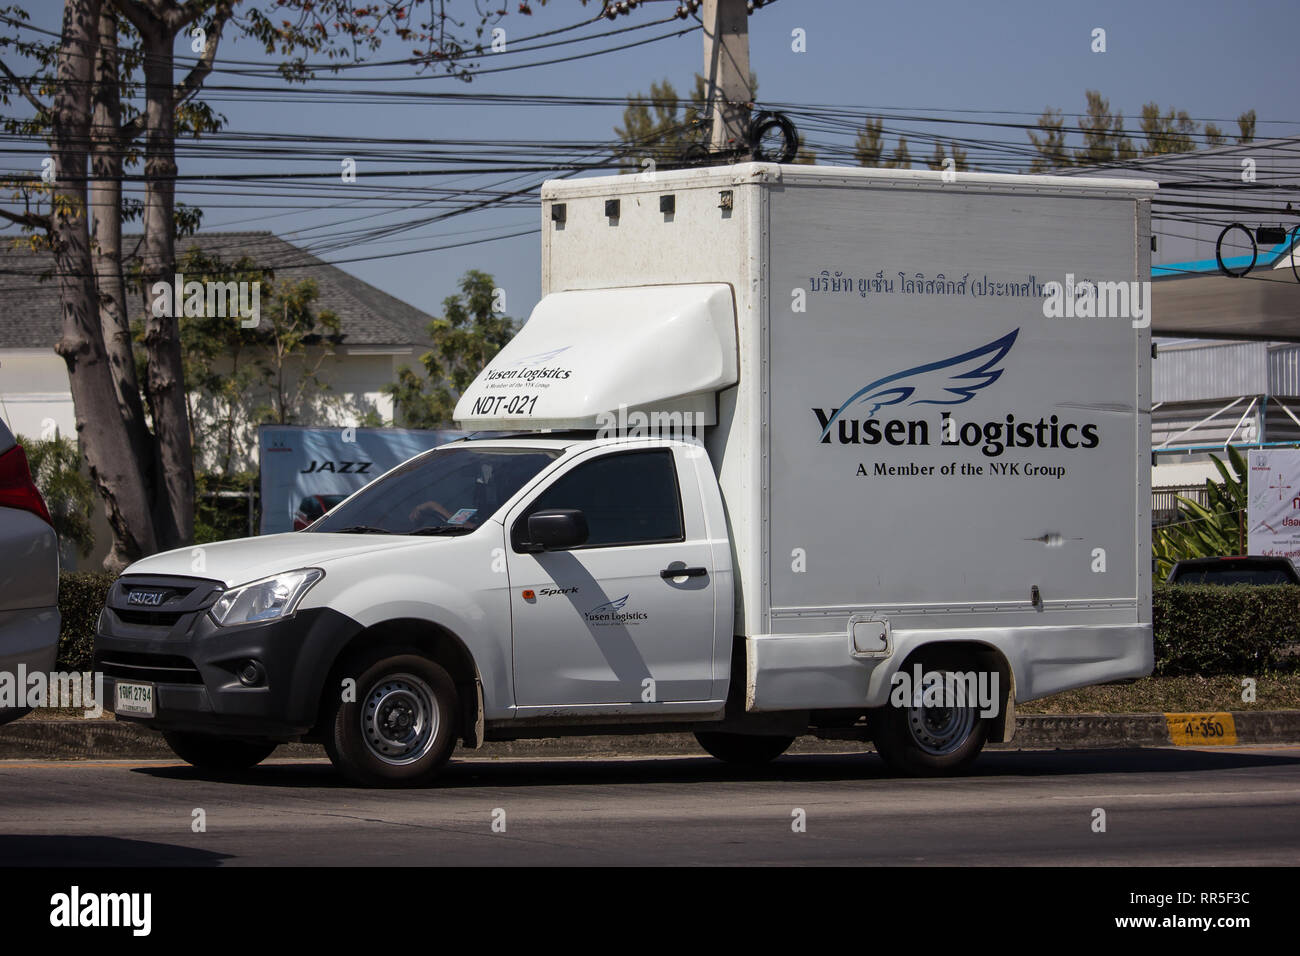 Yusen Logistics Stock Photos & Yusen Logistics Stock Images